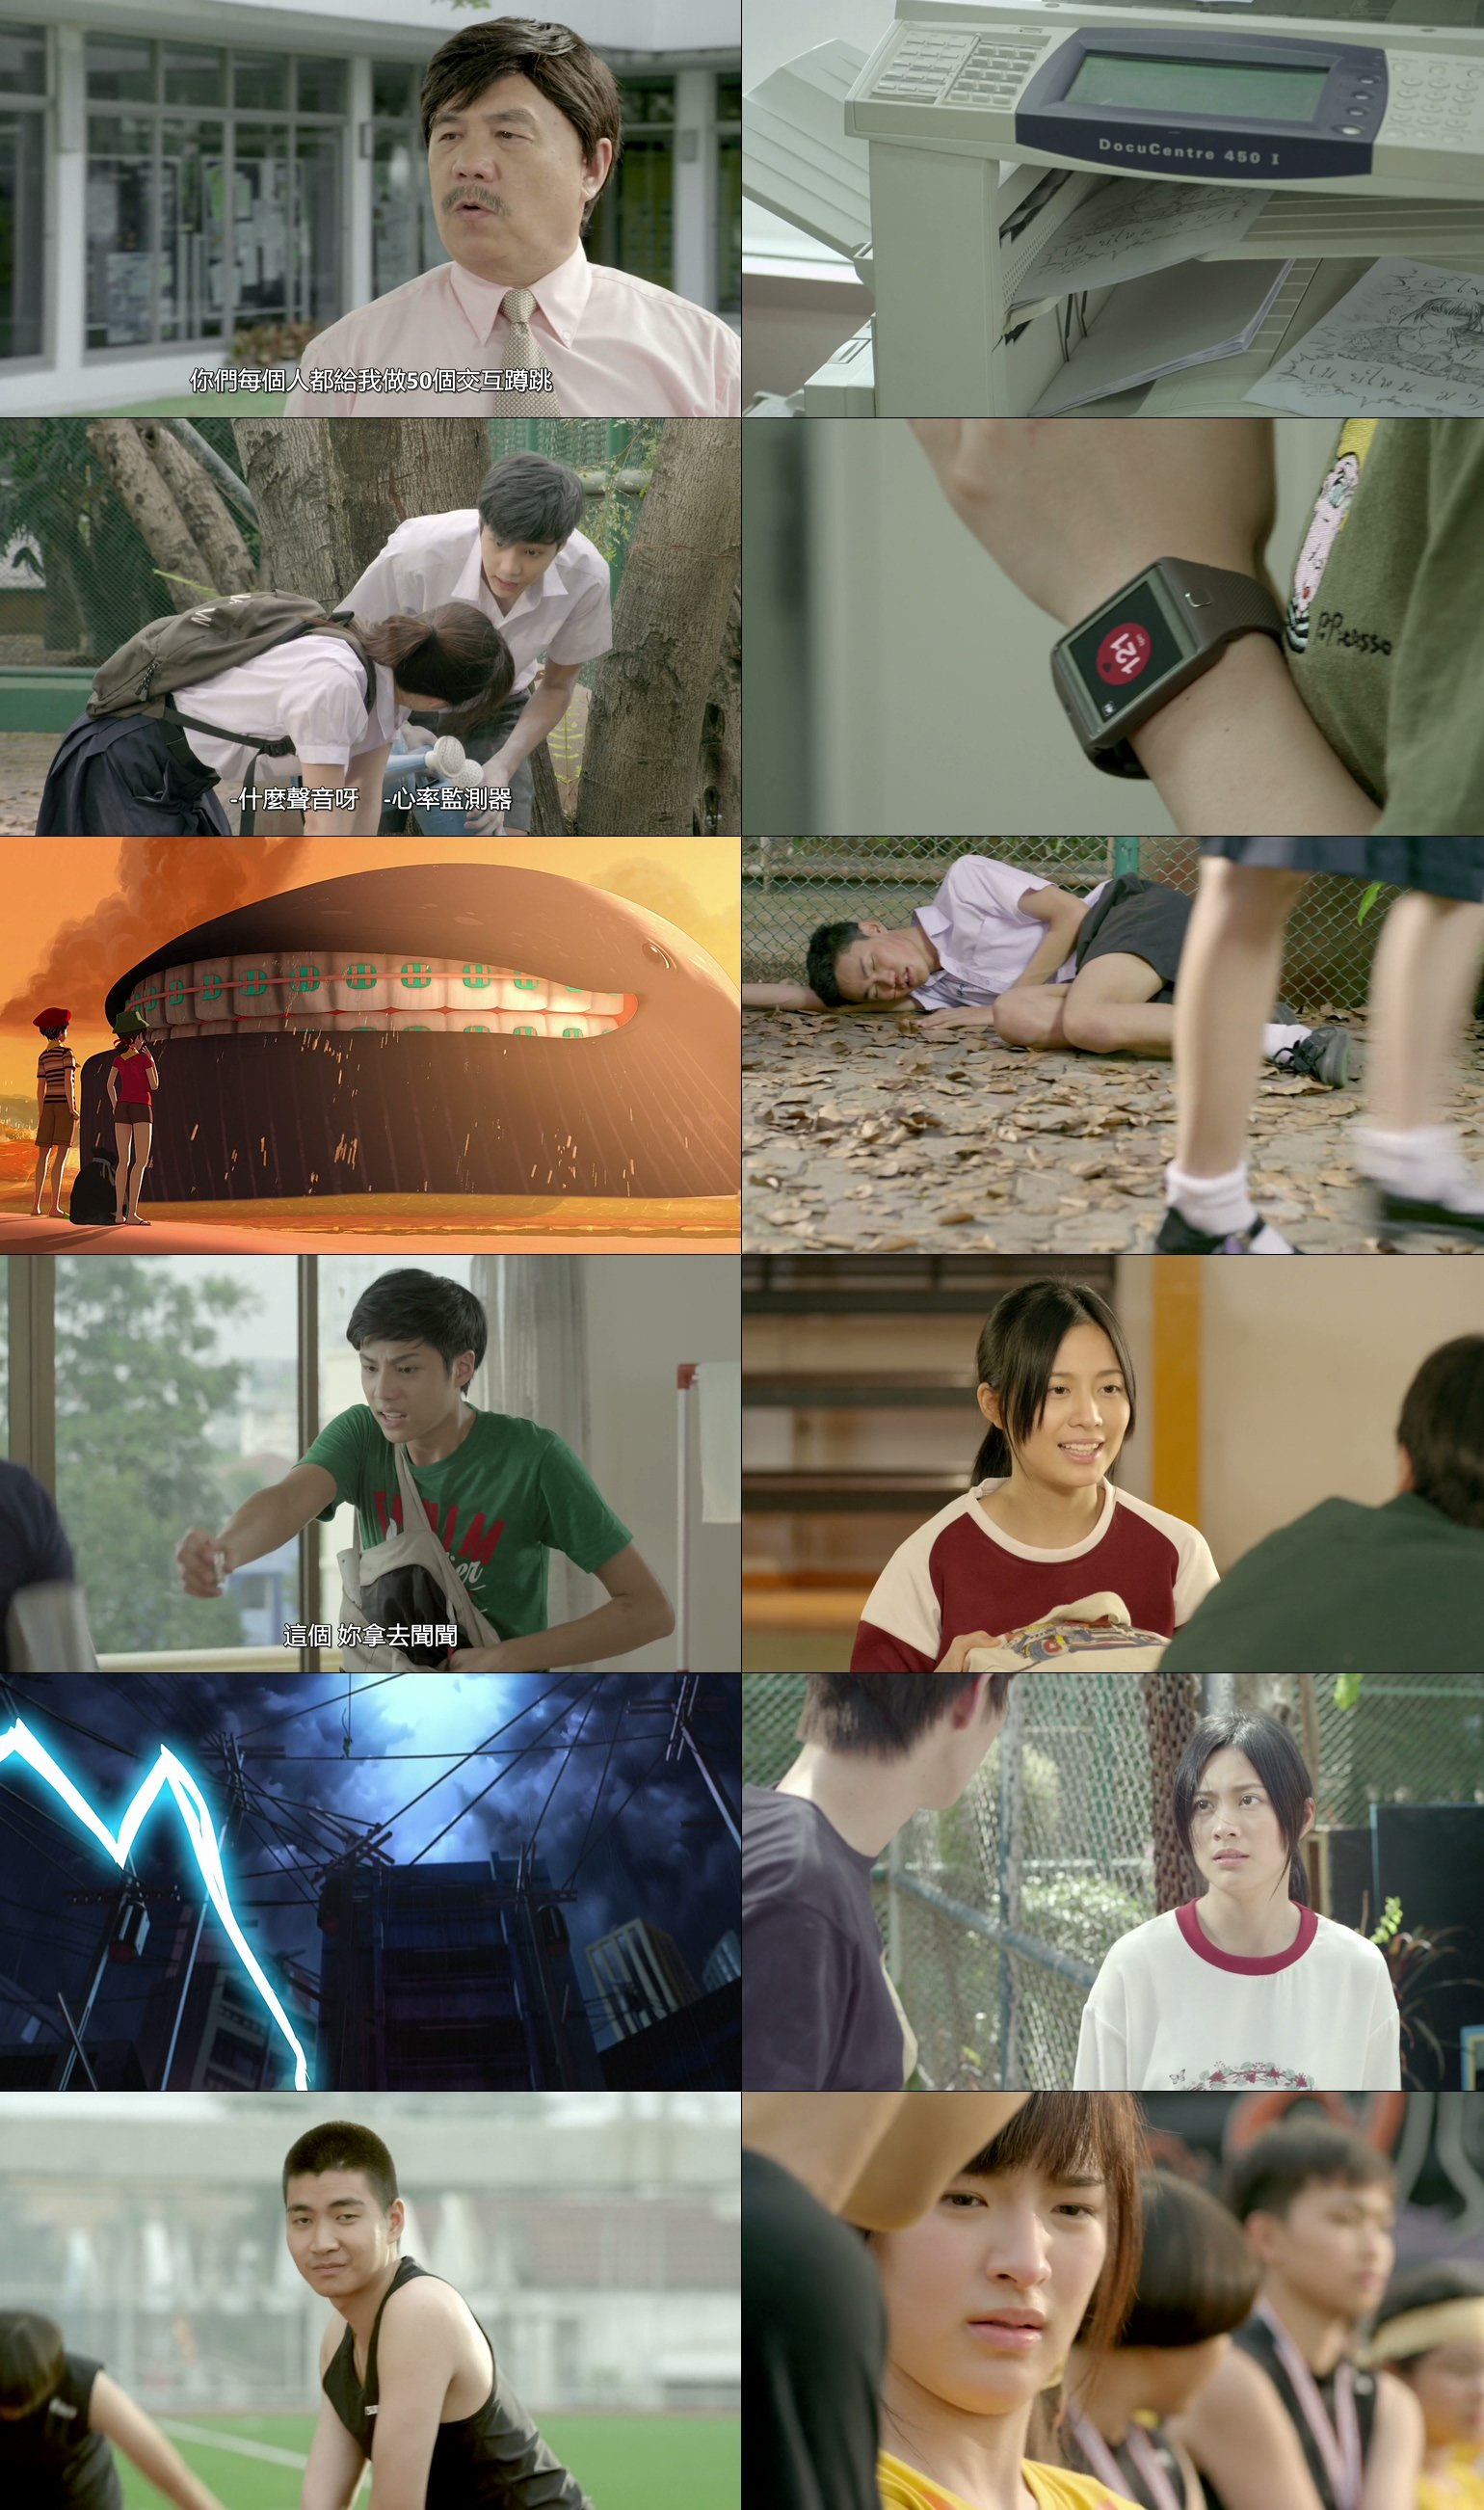 May.Who.2015.1080p.BDRip.x264-FEWAT